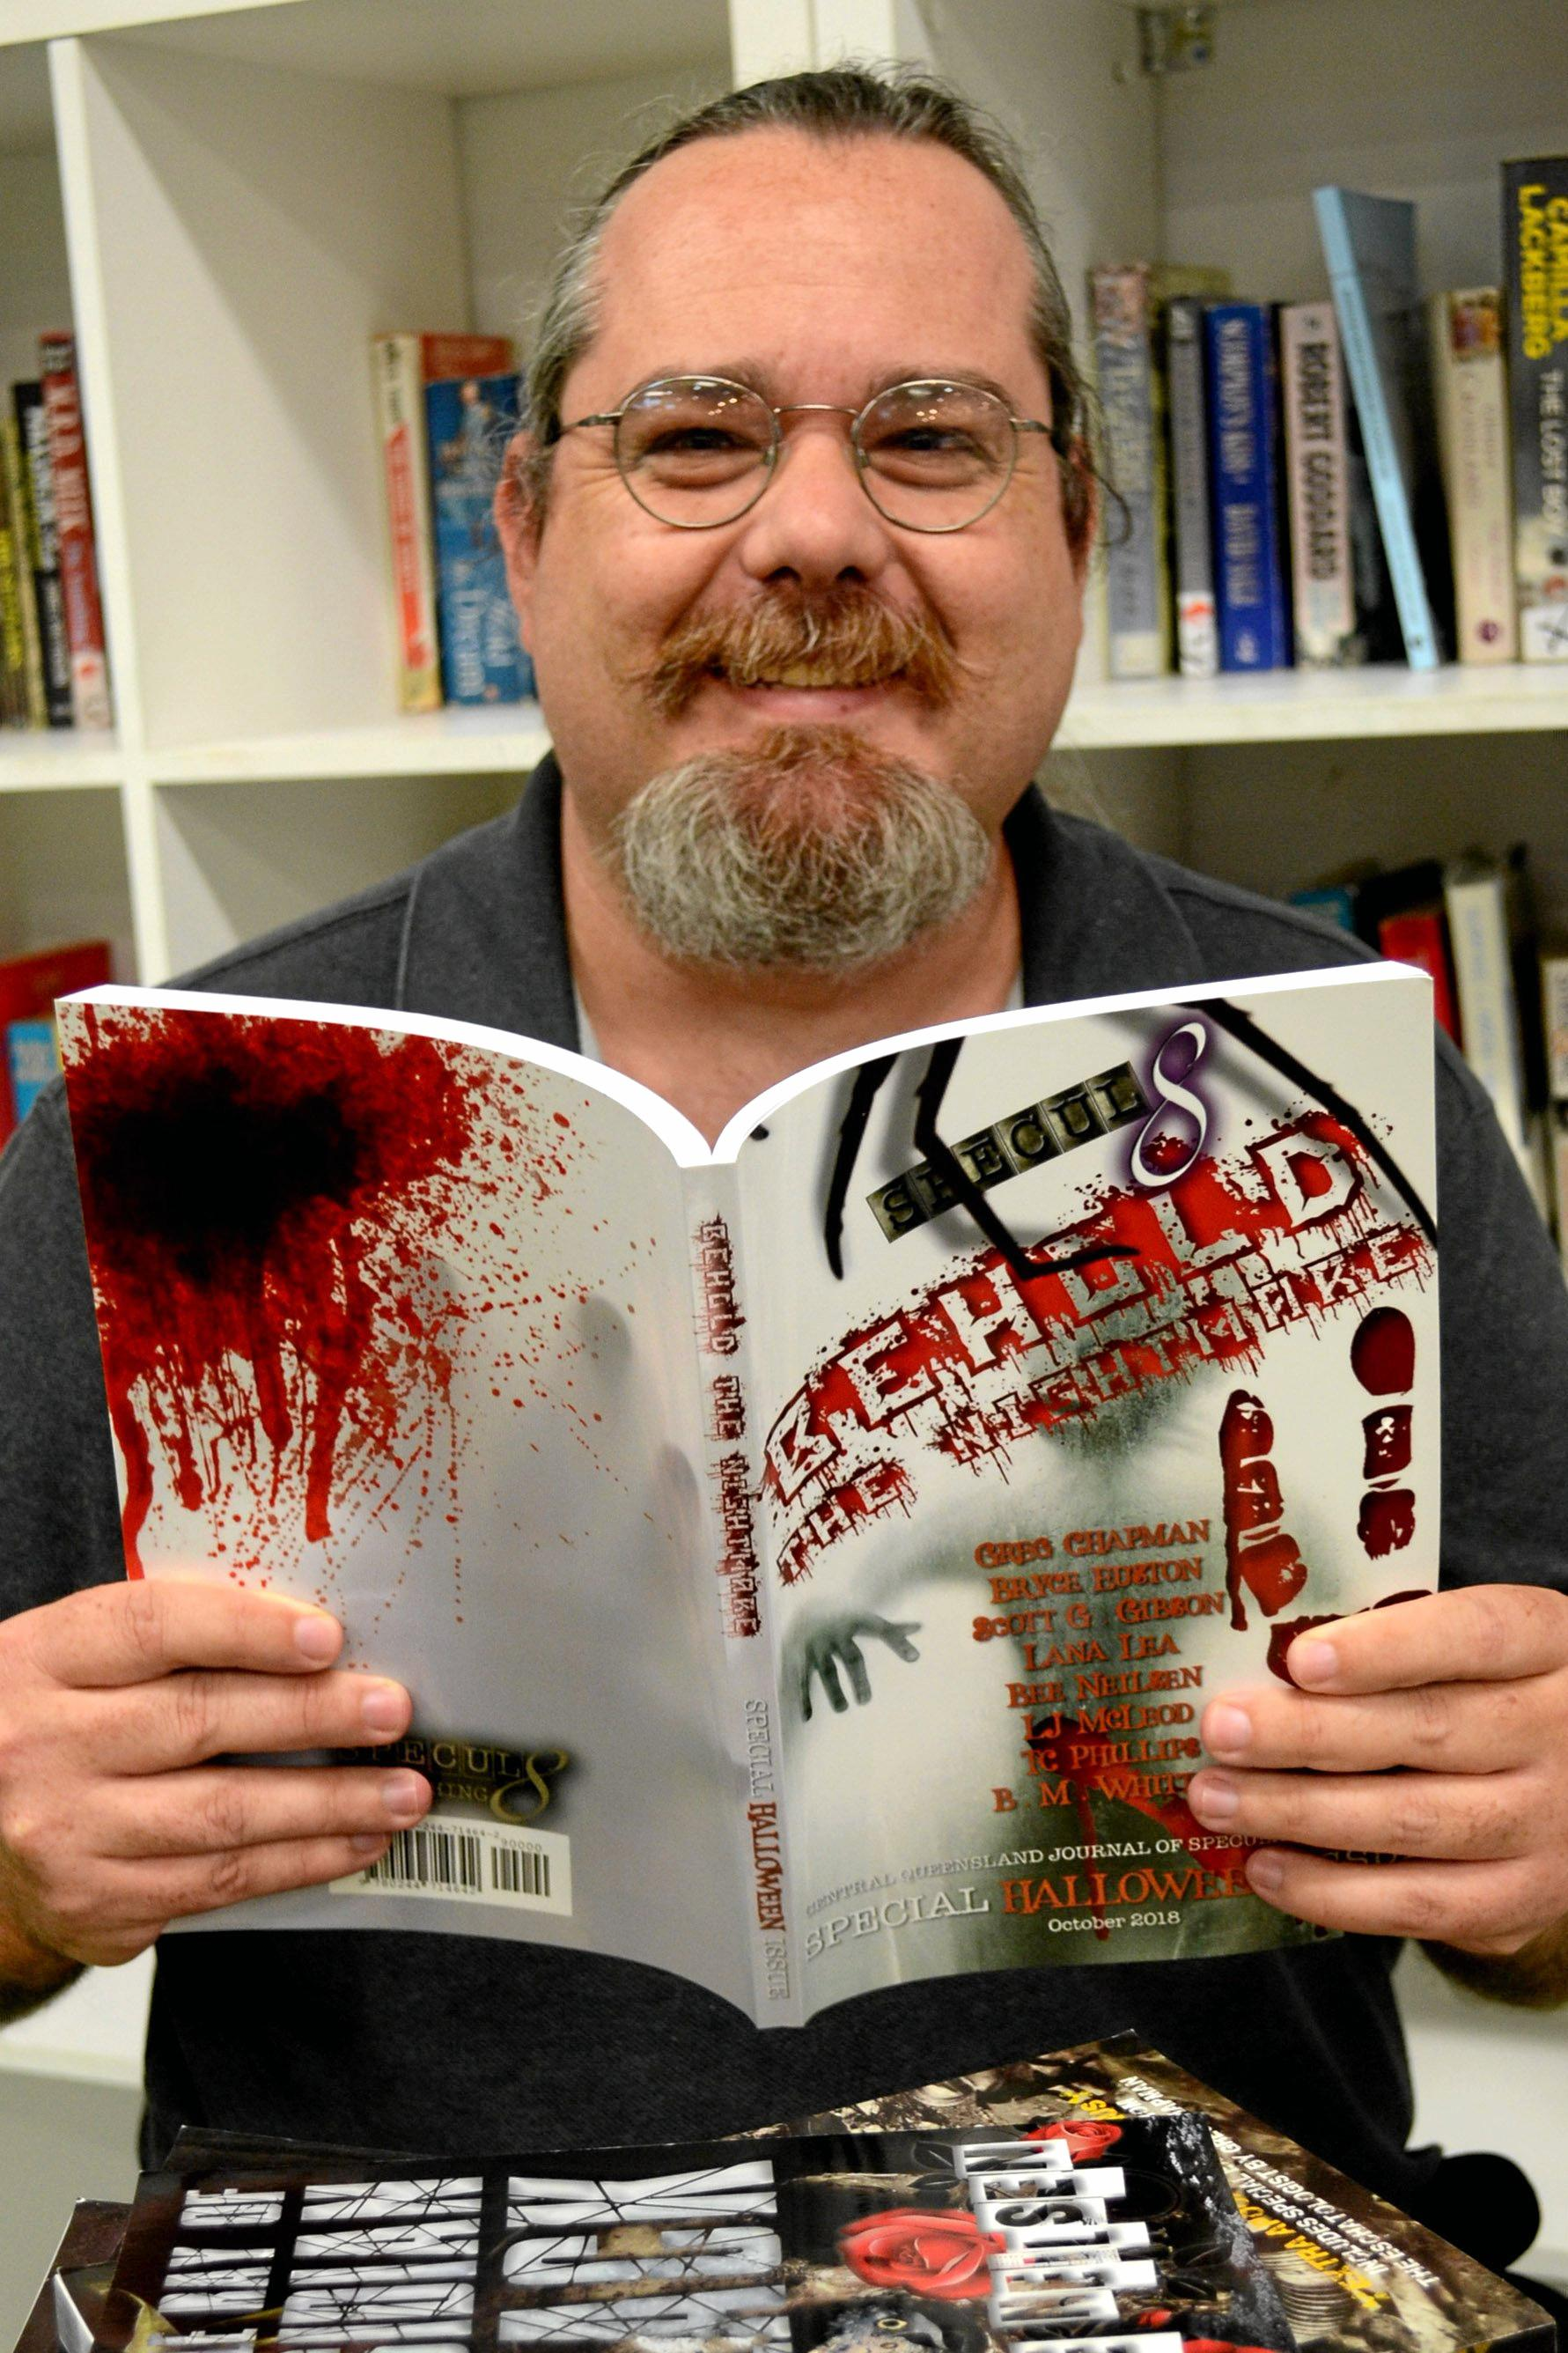 HORROR READ: Terry Phillips speculates on his adventures in self-publishing.